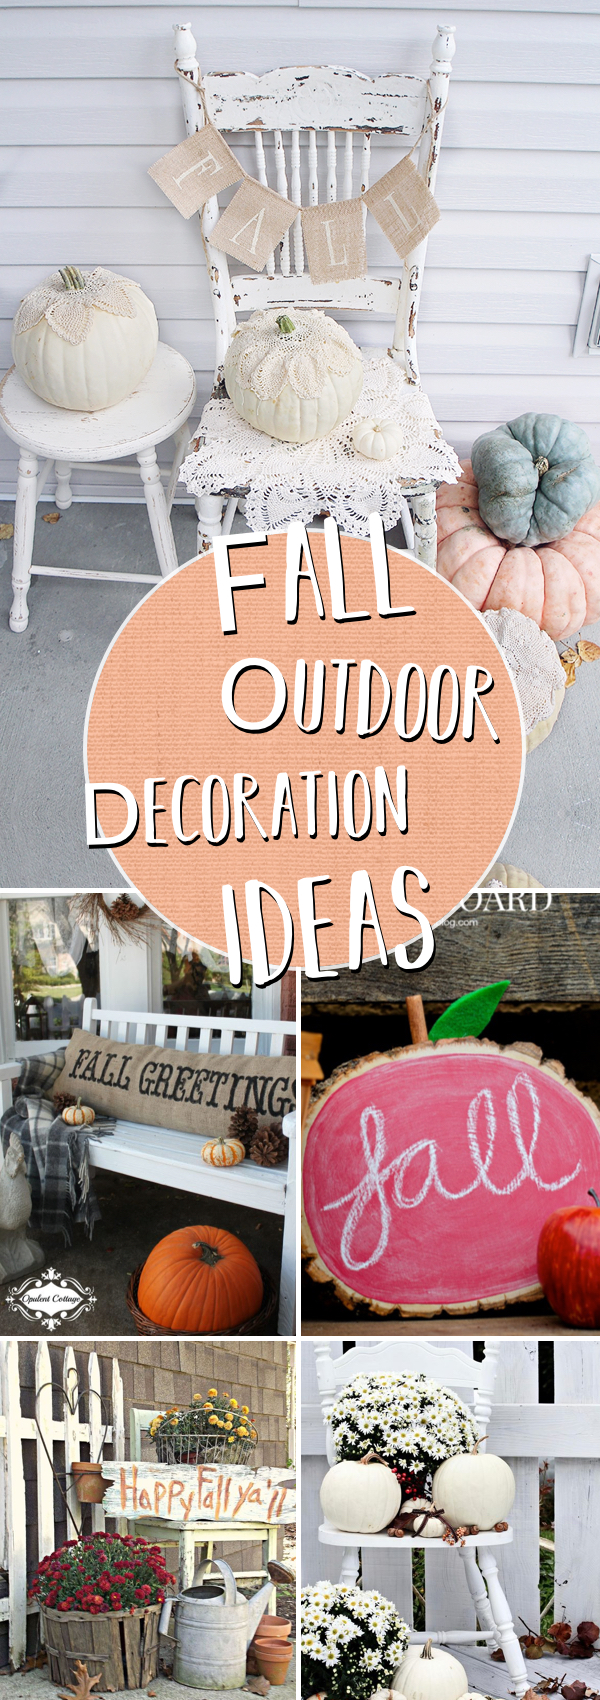 20 Incredible Fall Outdoor Decor Ideas Getting The Home